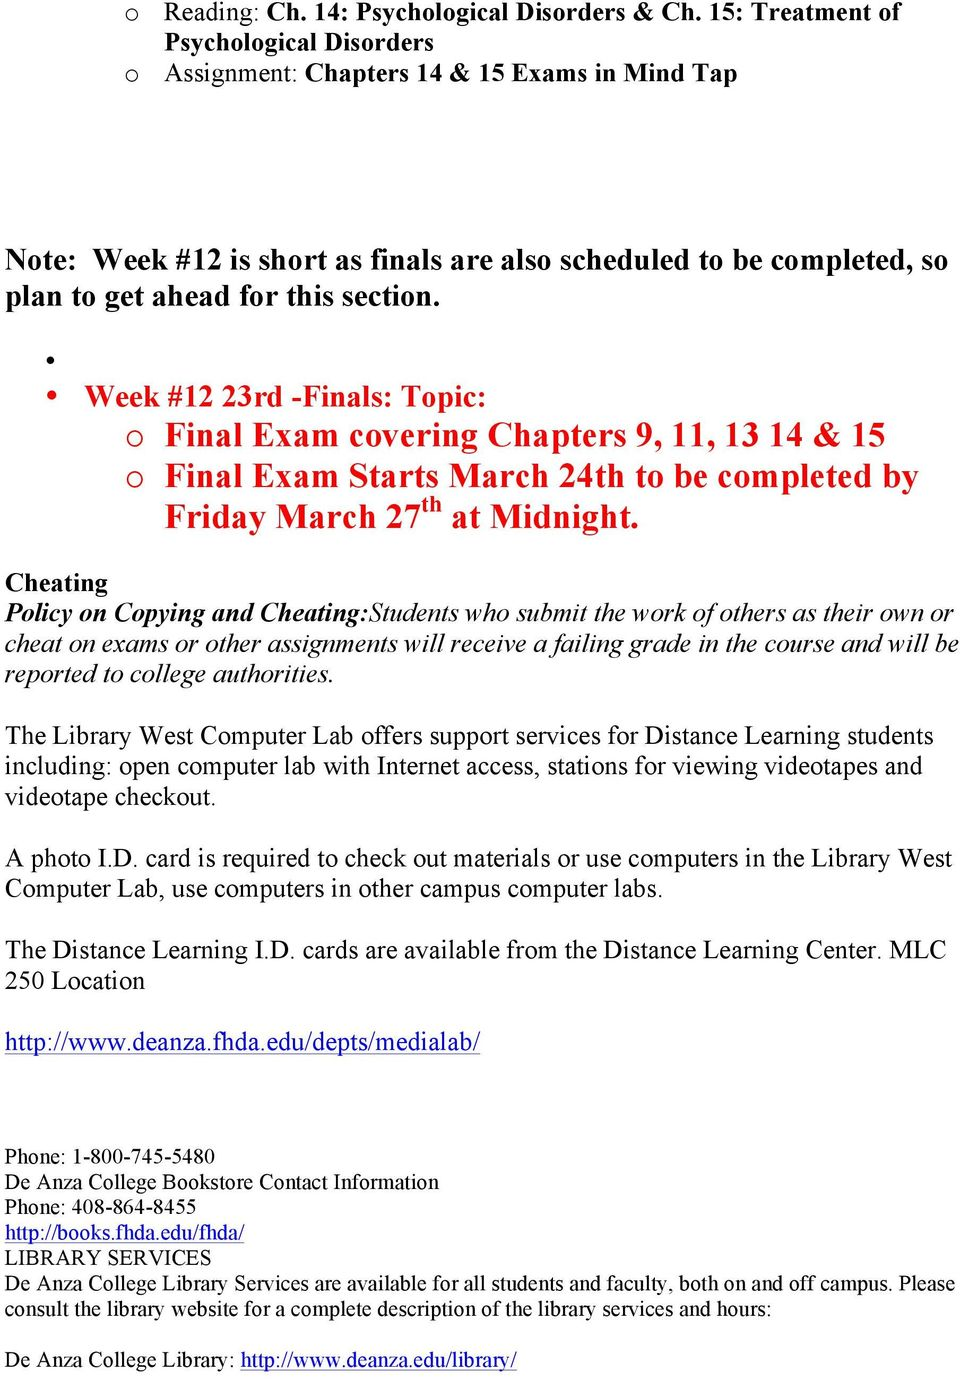 Week #12 23rd -Finals: Tpic: Final Exam cvering Chapters 9, 11, 13 14 & 15 Final Exam Starts March 24th t be cmpleted by Friday March 27 th at Midnight.